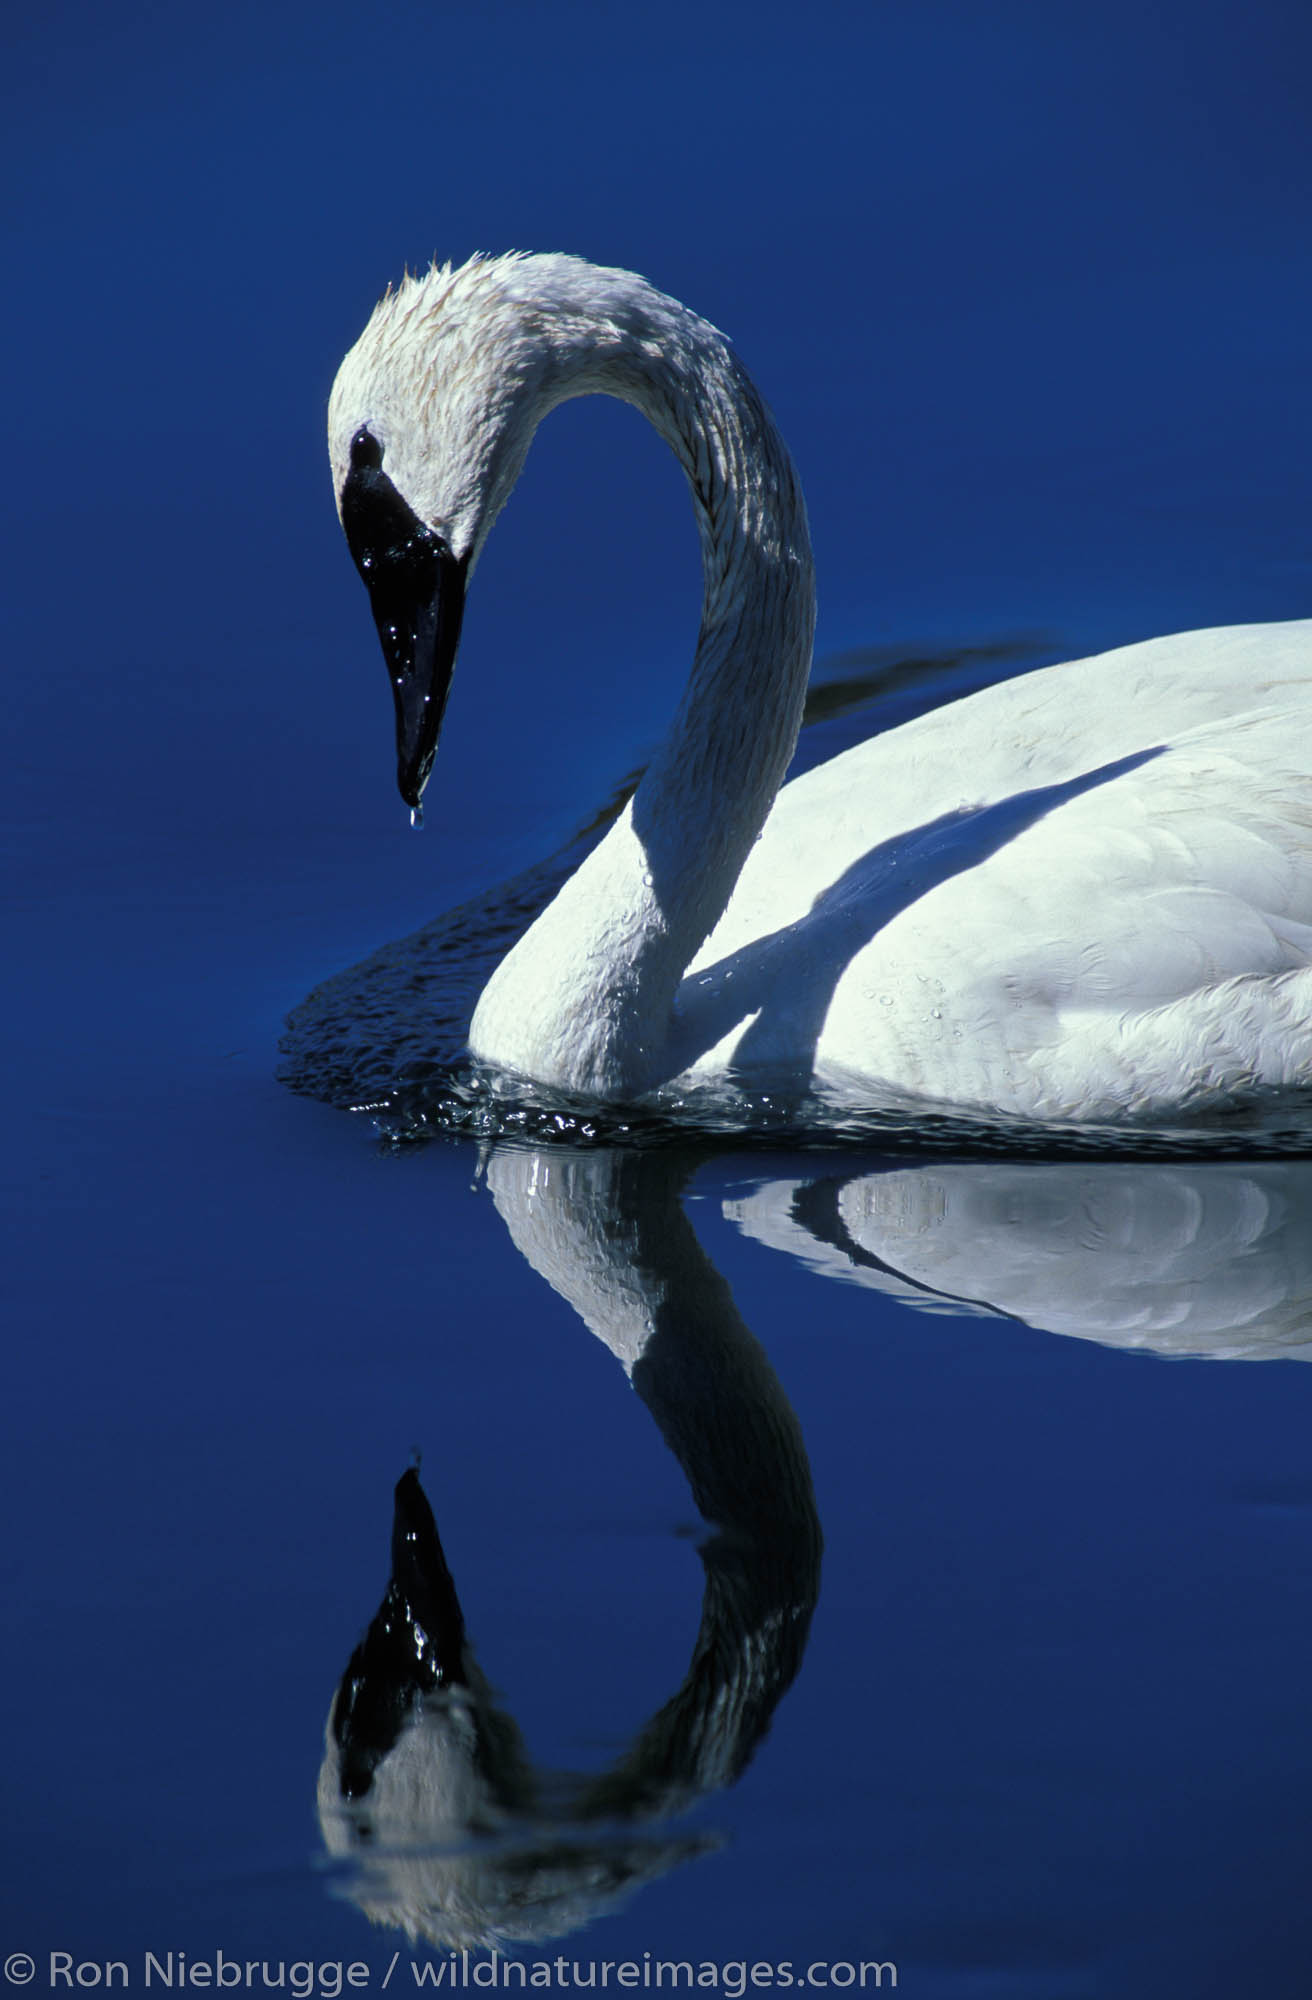 A Trumpeter Swan (Cygnus buccinator) on the Madison River, Yellowstone National Park, Wyoming.